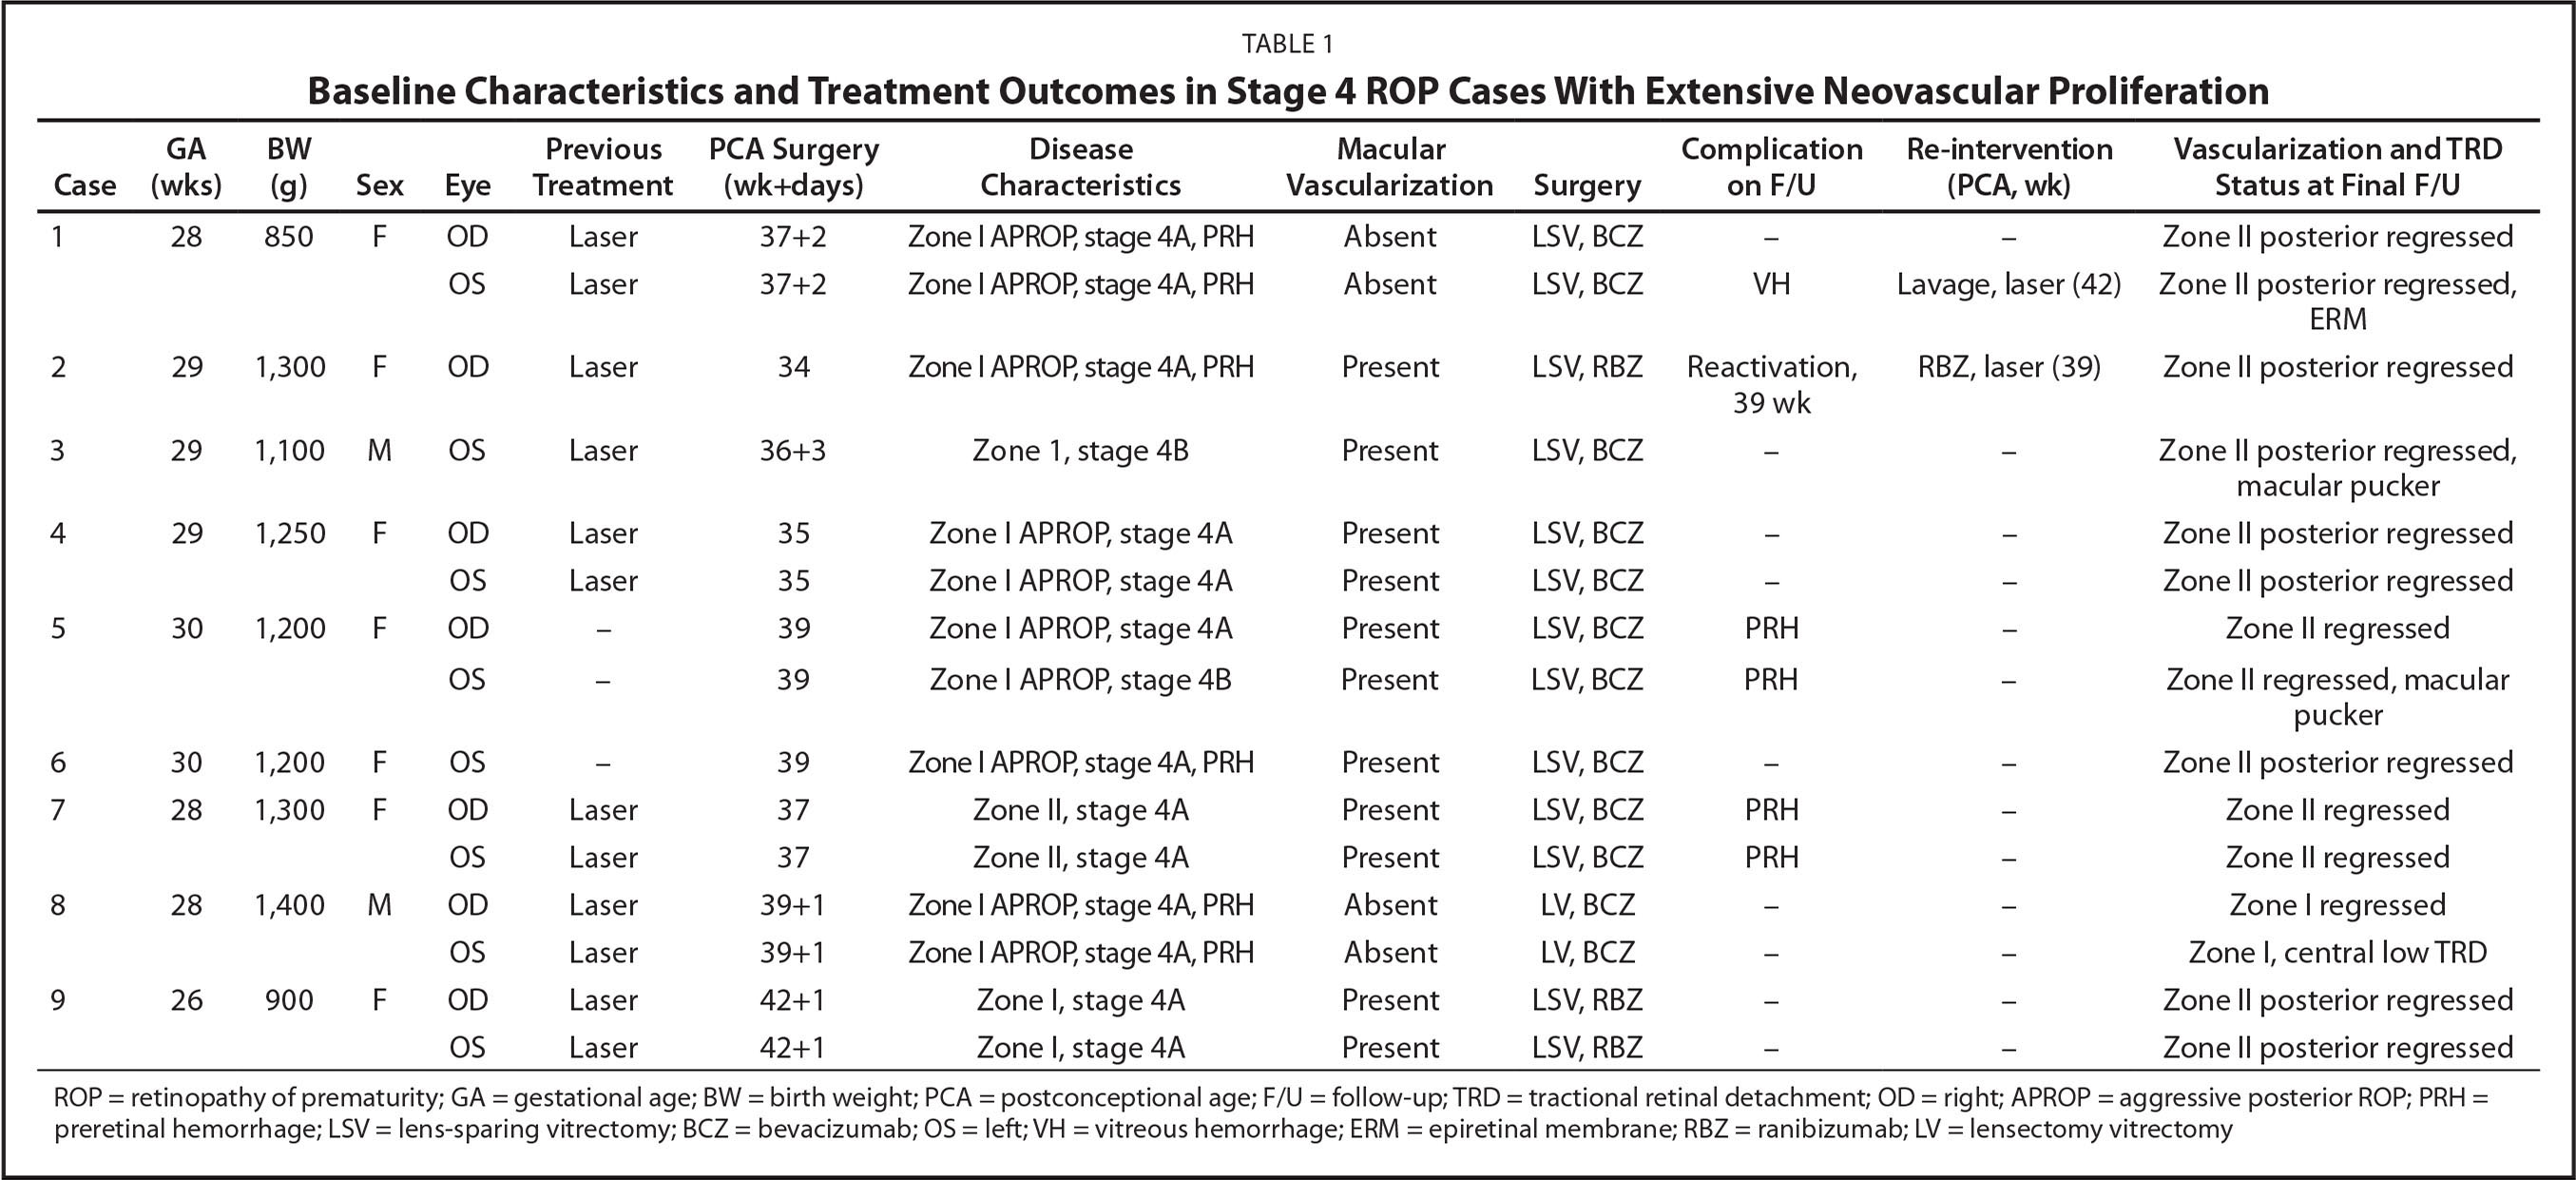 Baseline Characteristics and Treatment Outcomes in Stage 4 ROP Cases With Extensive Neovascular Proliferation